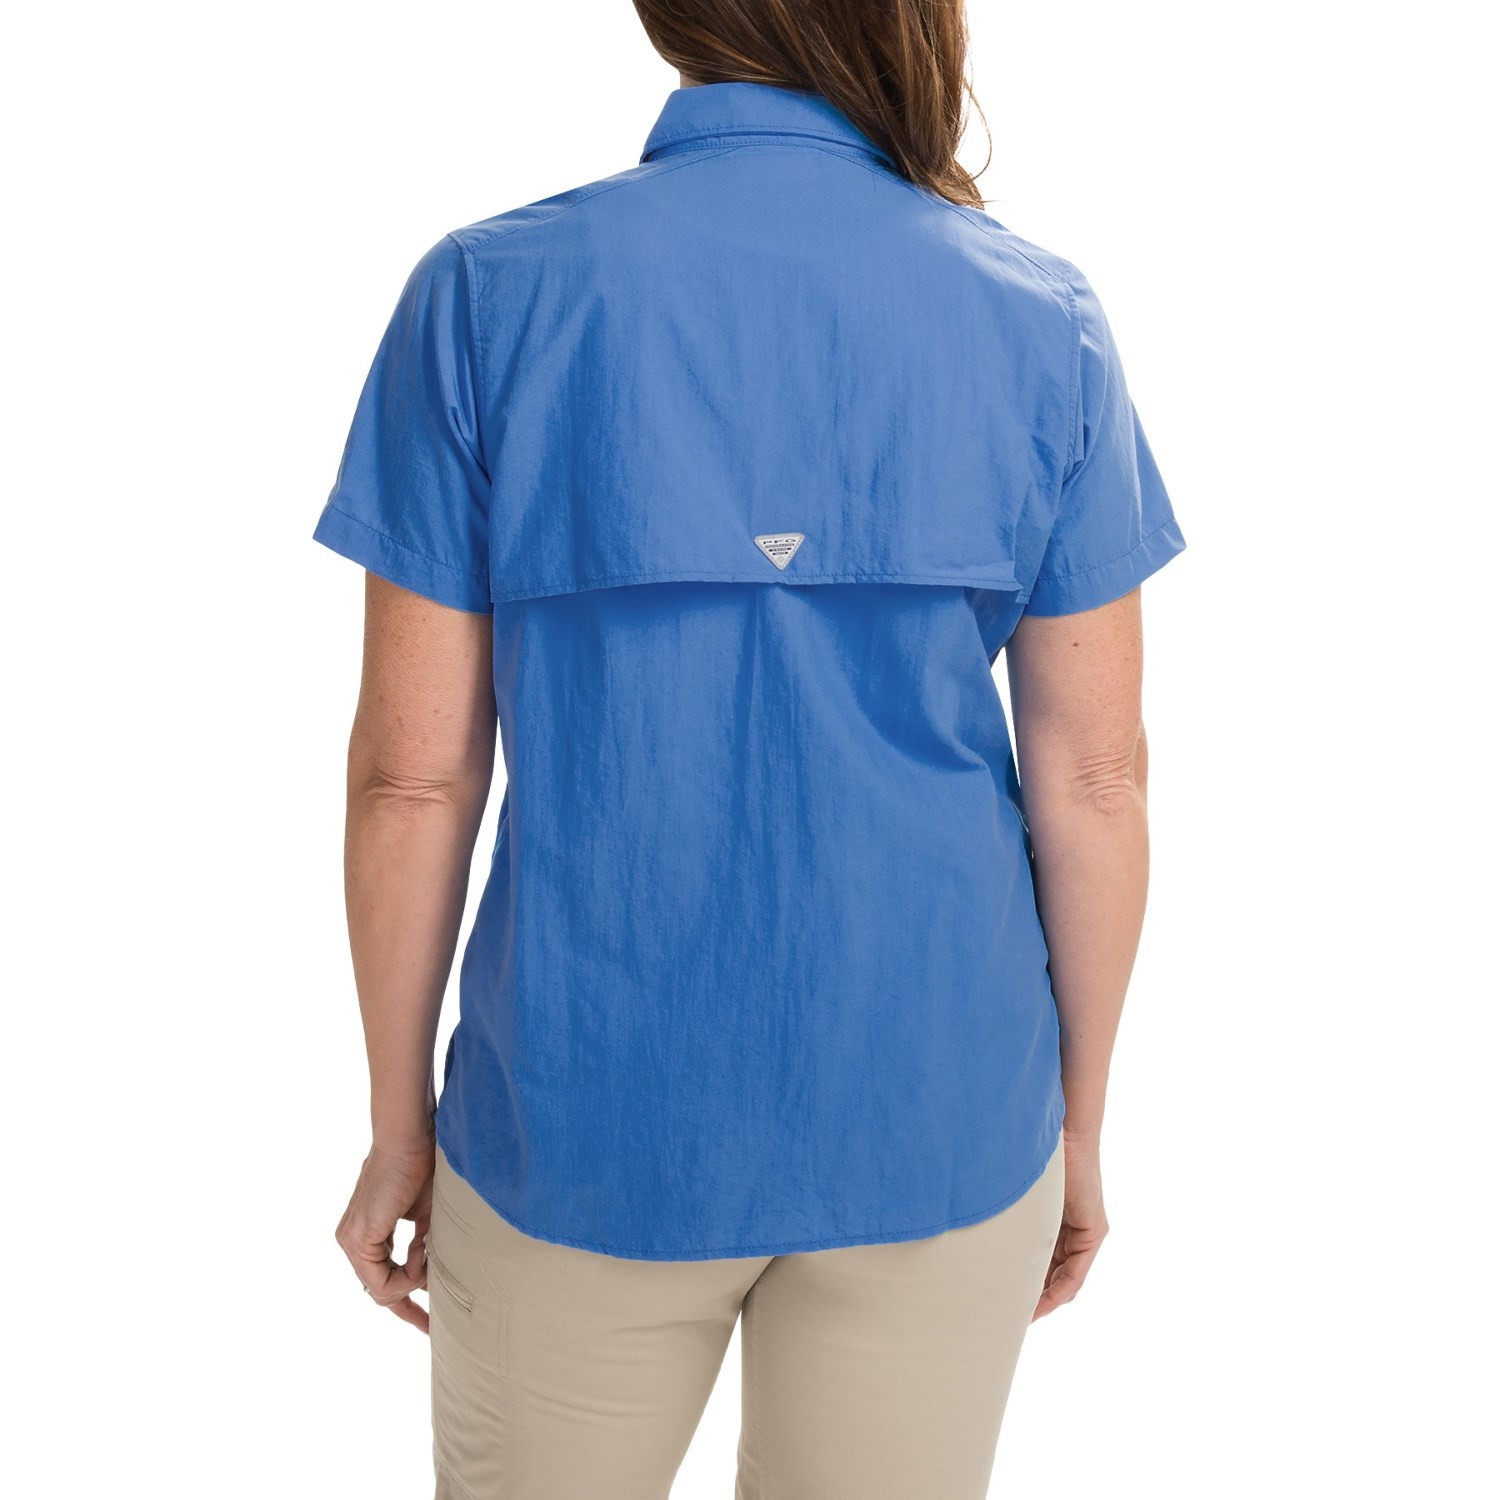 Columbia sportswear pfg bahama shirt for women for Columbia shirts womens pfg